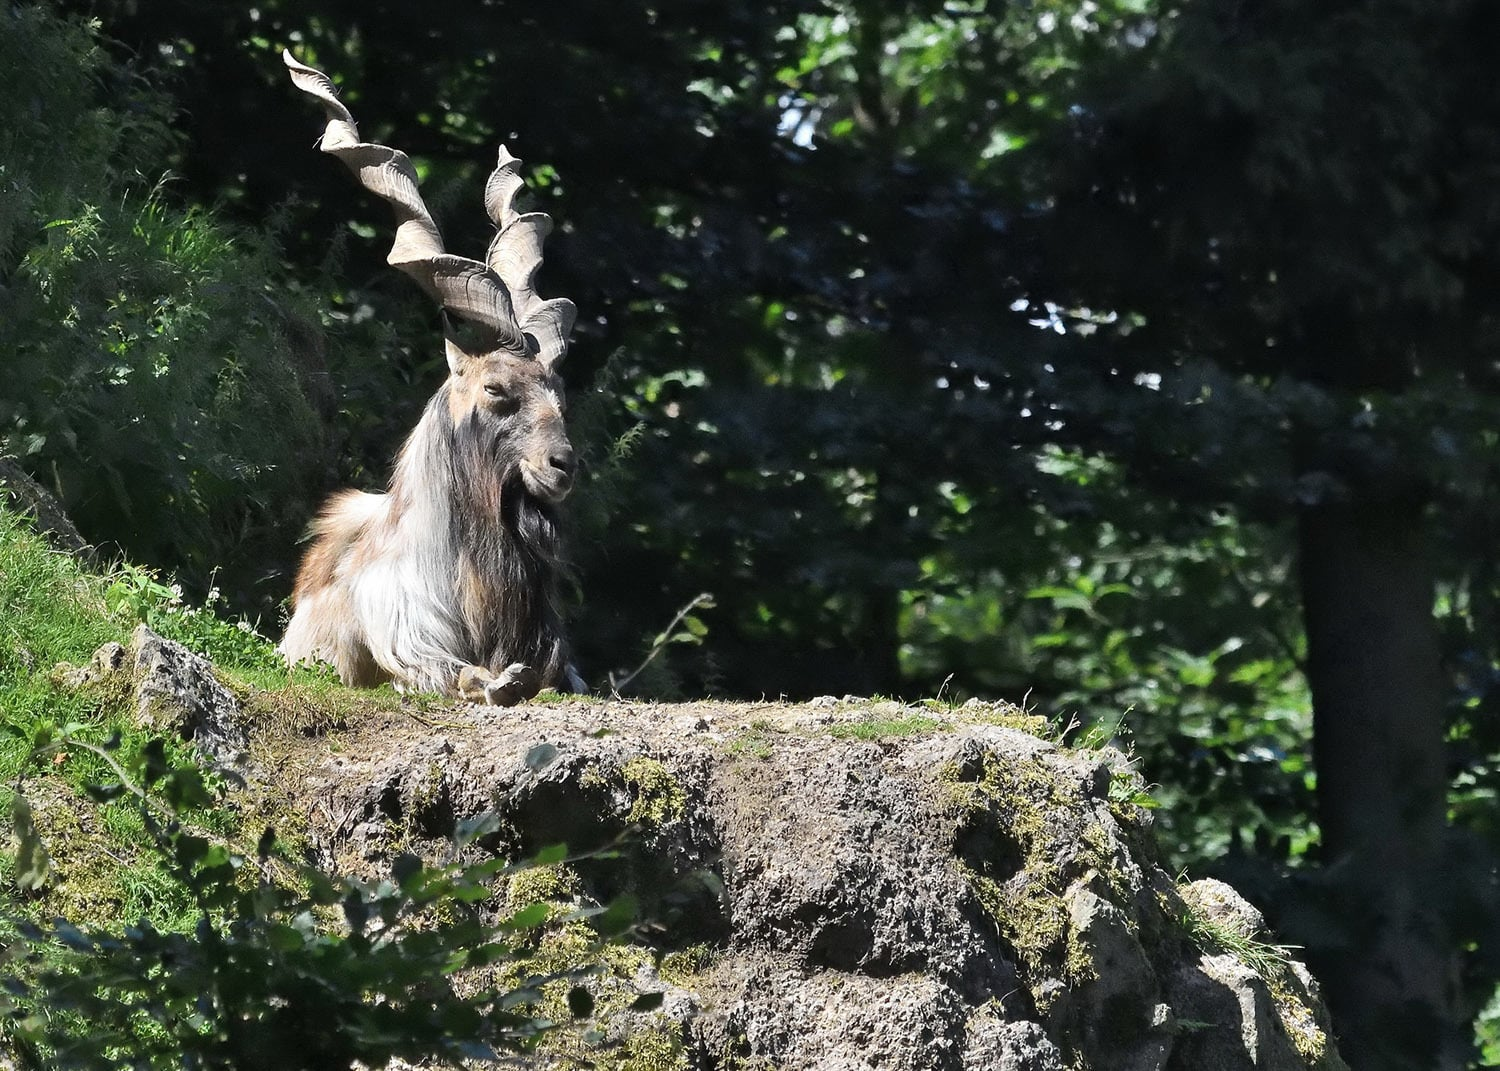 Testimonies from people on the ground indicate that the markhor population is indeed increasing.